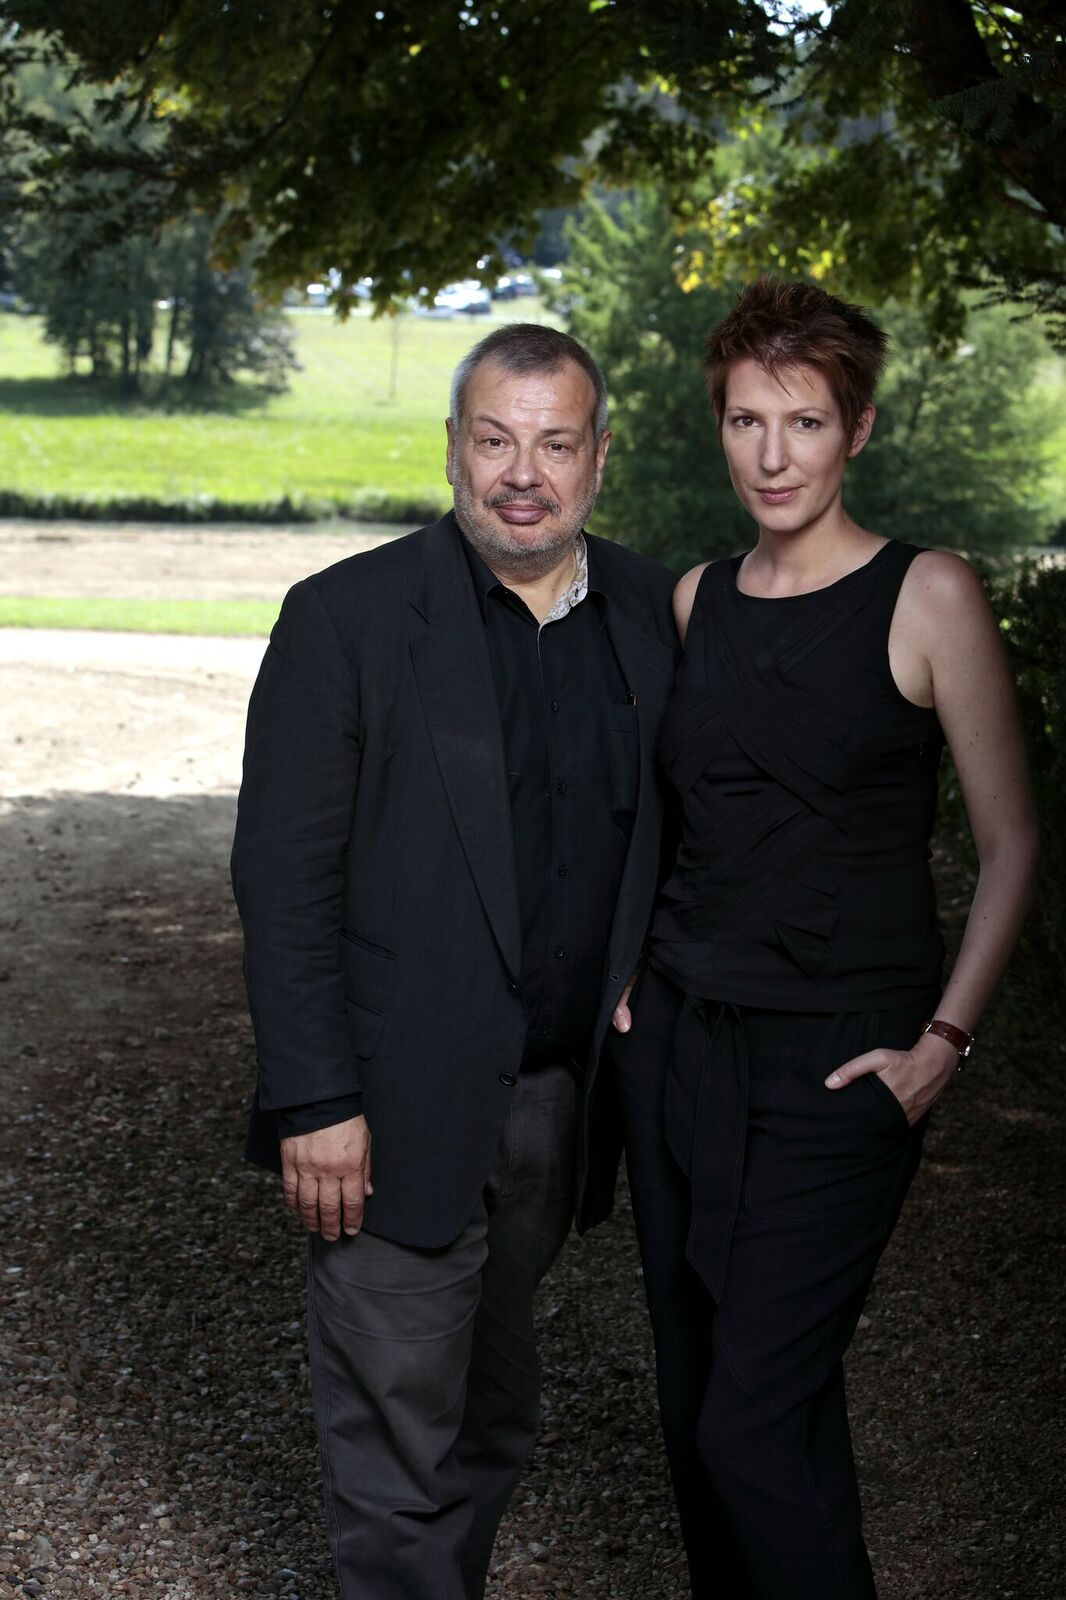 Journaliste et écrivain Natacha Polony et son mari Perico Legasse photographié à PARIS. | Photo : Getty Images